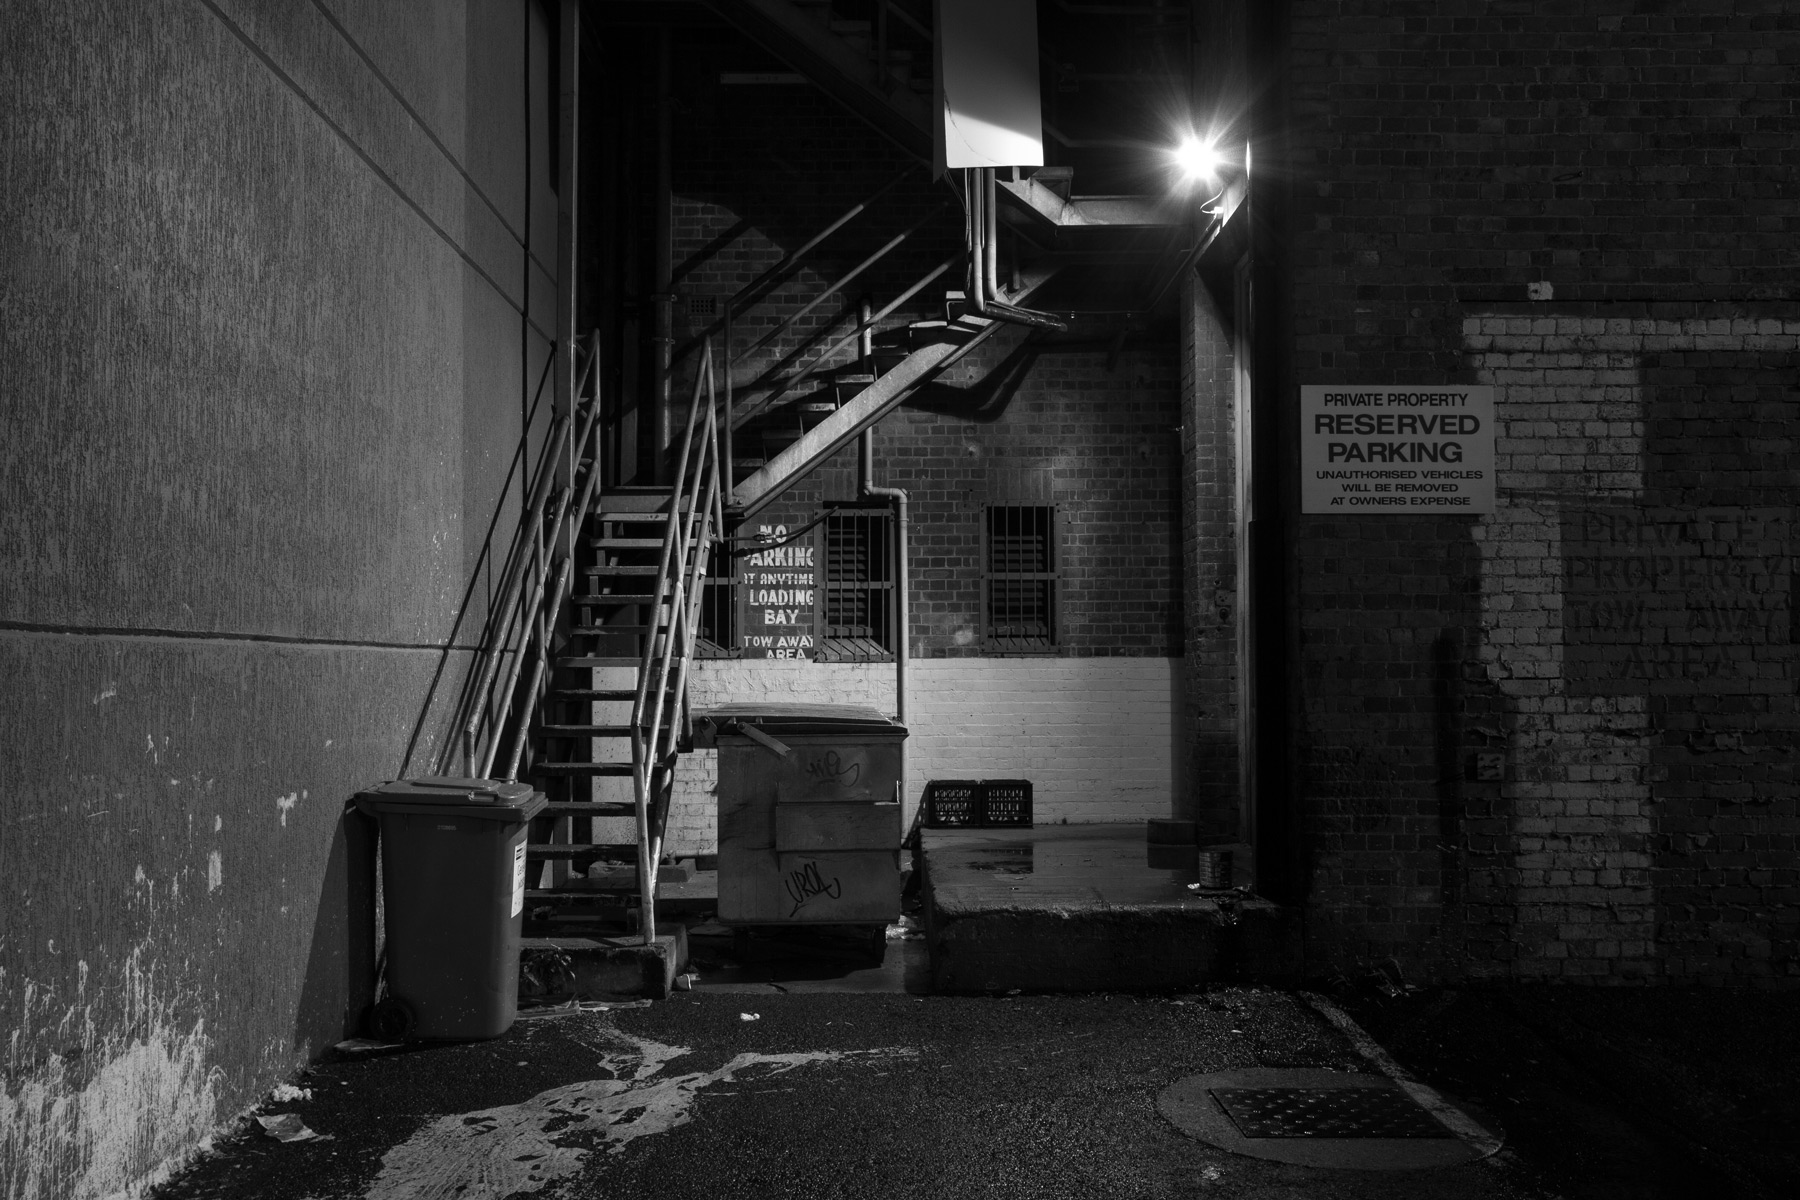 An alley at night in the Brisbane CBD